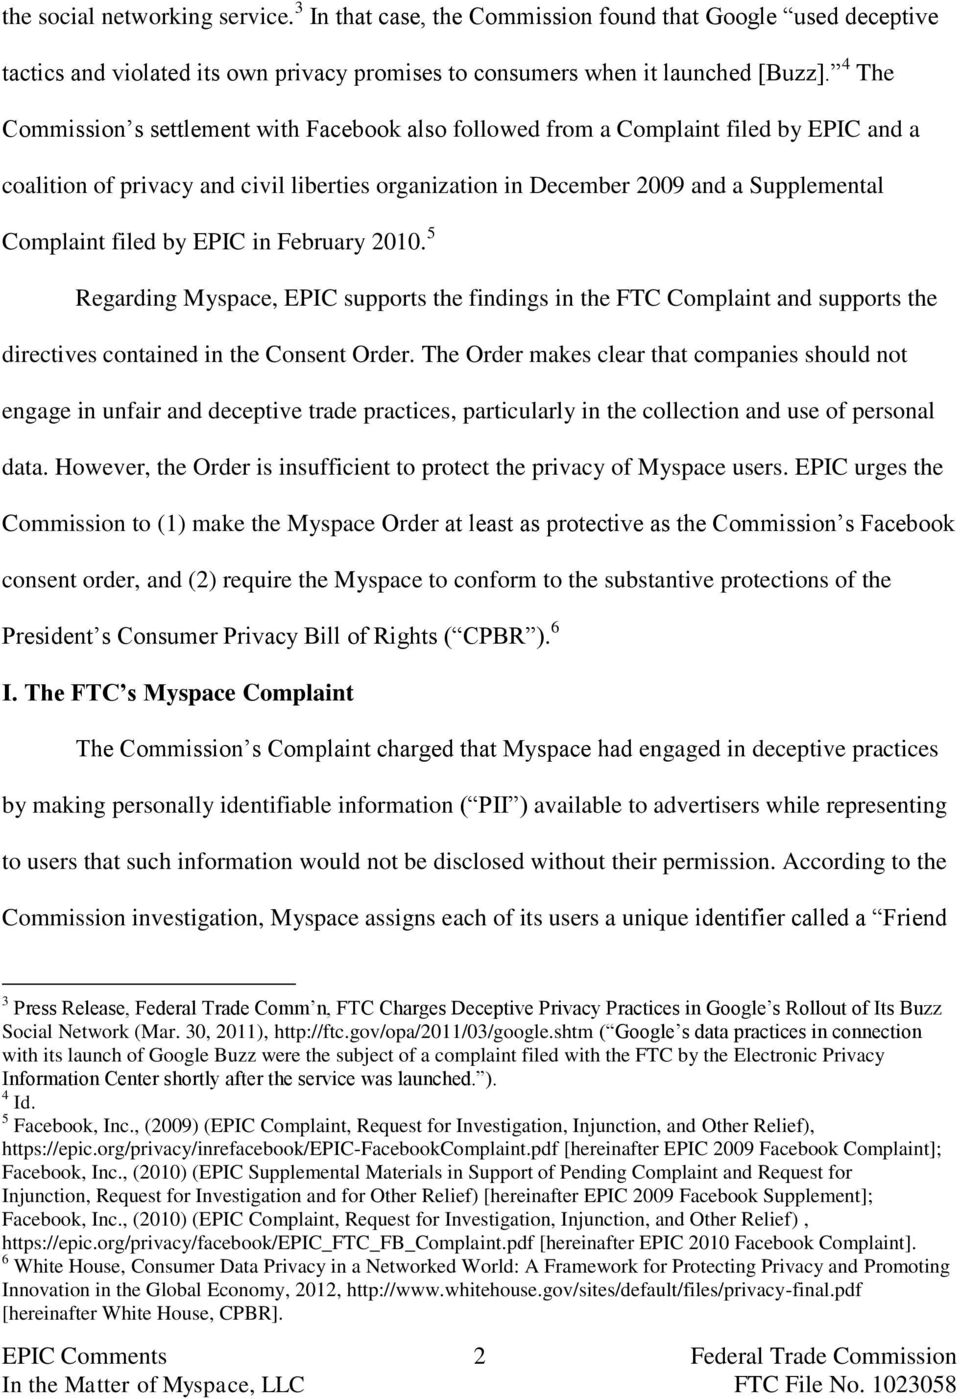 filed by EPIC in February 2010. 5 Regarding Myspace, EPIC supports the findings in the FTC Complaint and supports the directives contained in the Consent Order.